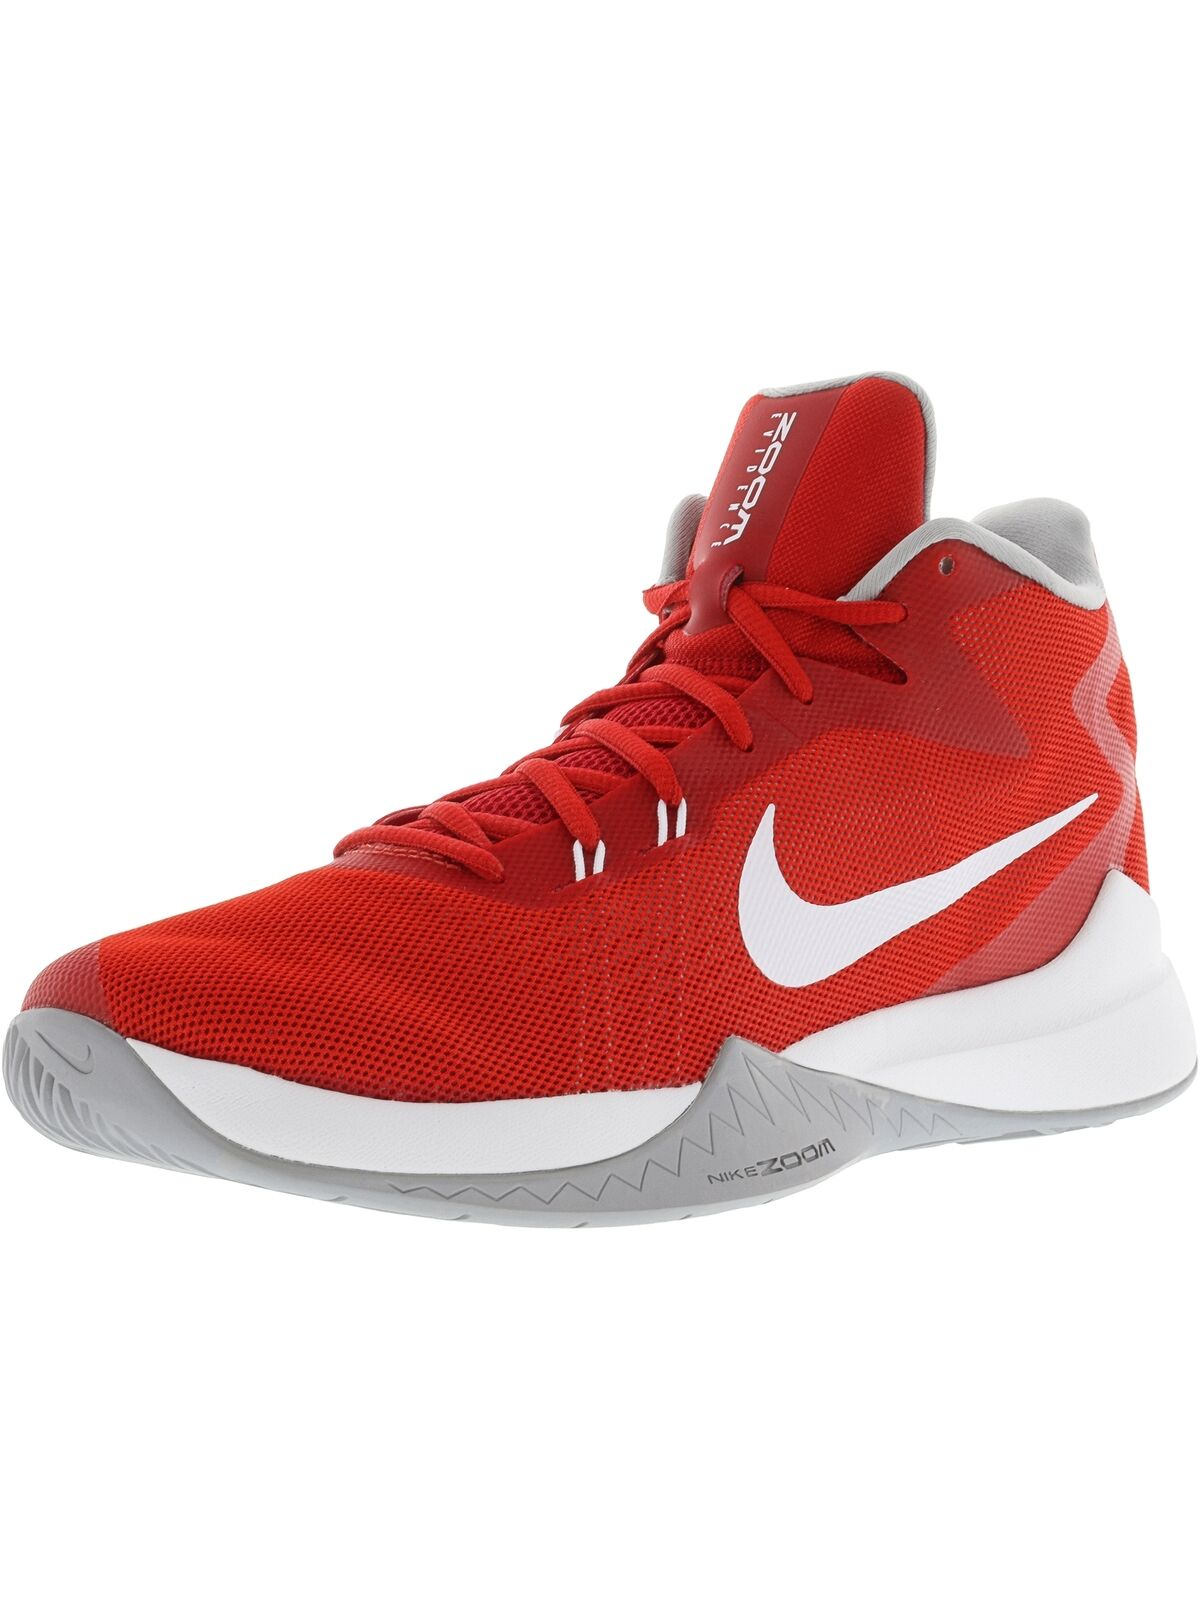 Nike Men's Zoom Evidence Ankle-High Basketball shoes